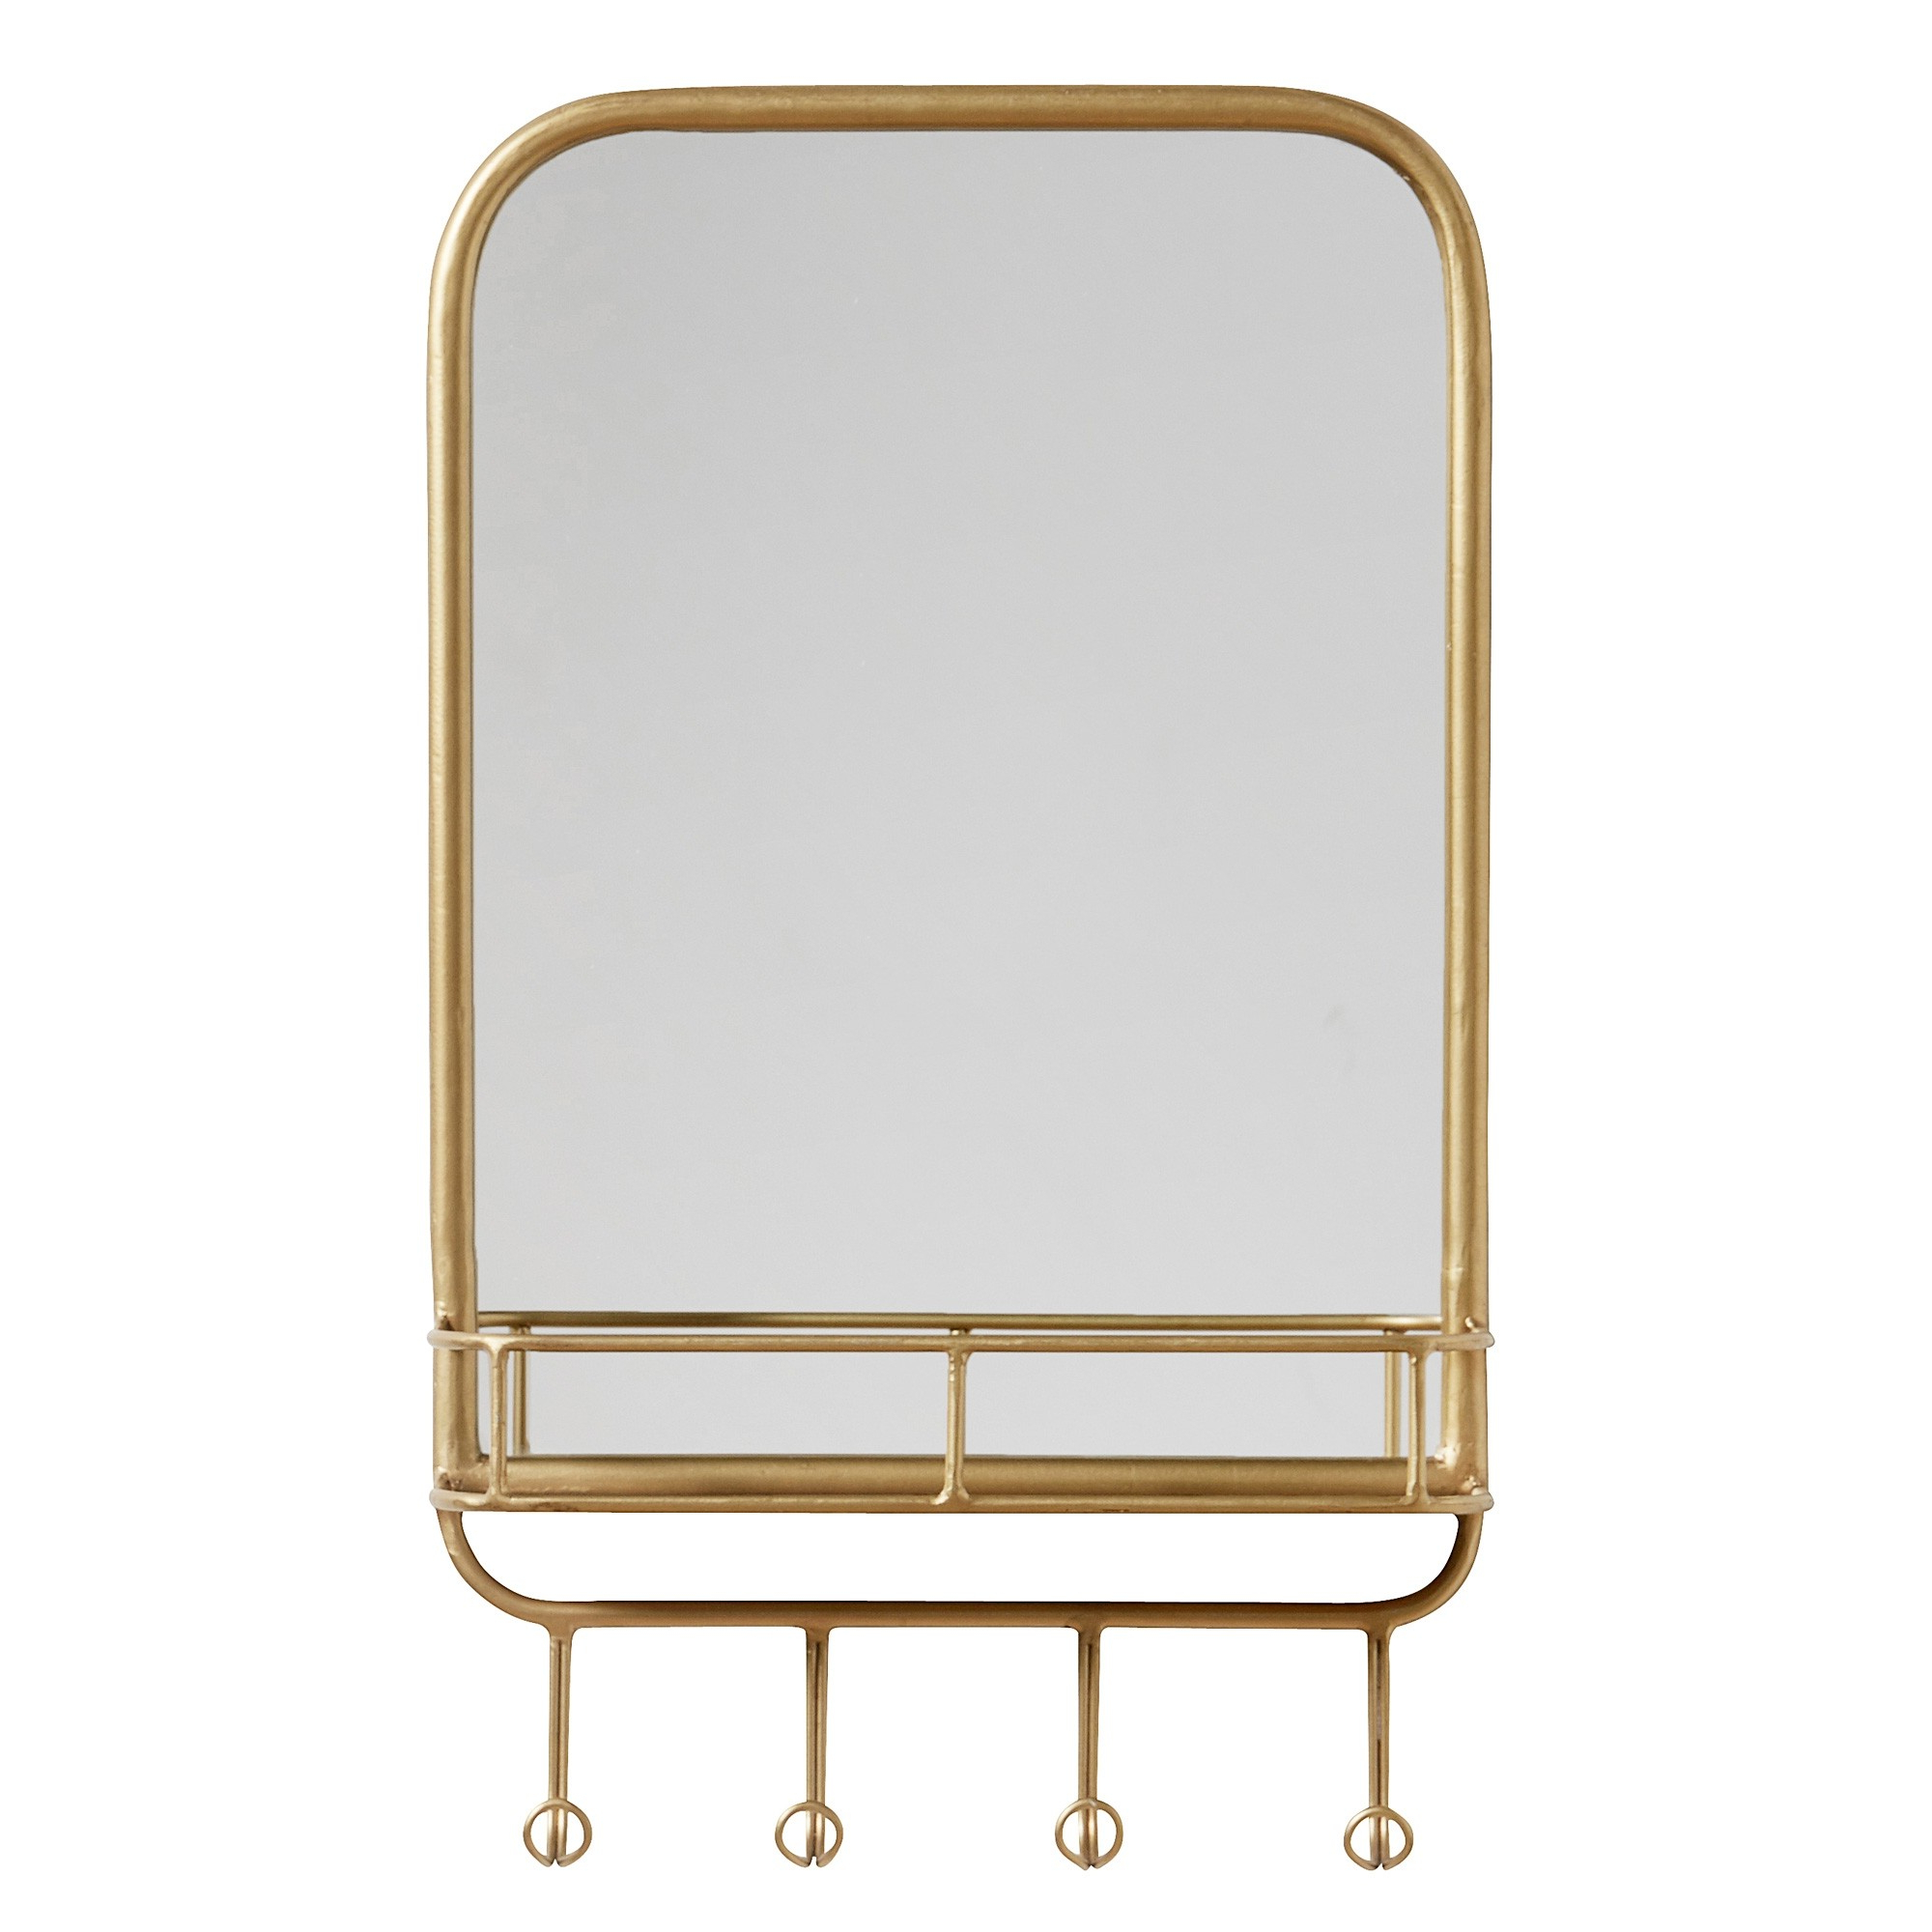 Wall Mirrors With Shelf And Hooks With Regard To Newest Simple Wall Mirror With Shelf And Hooks (View 8 of 20)